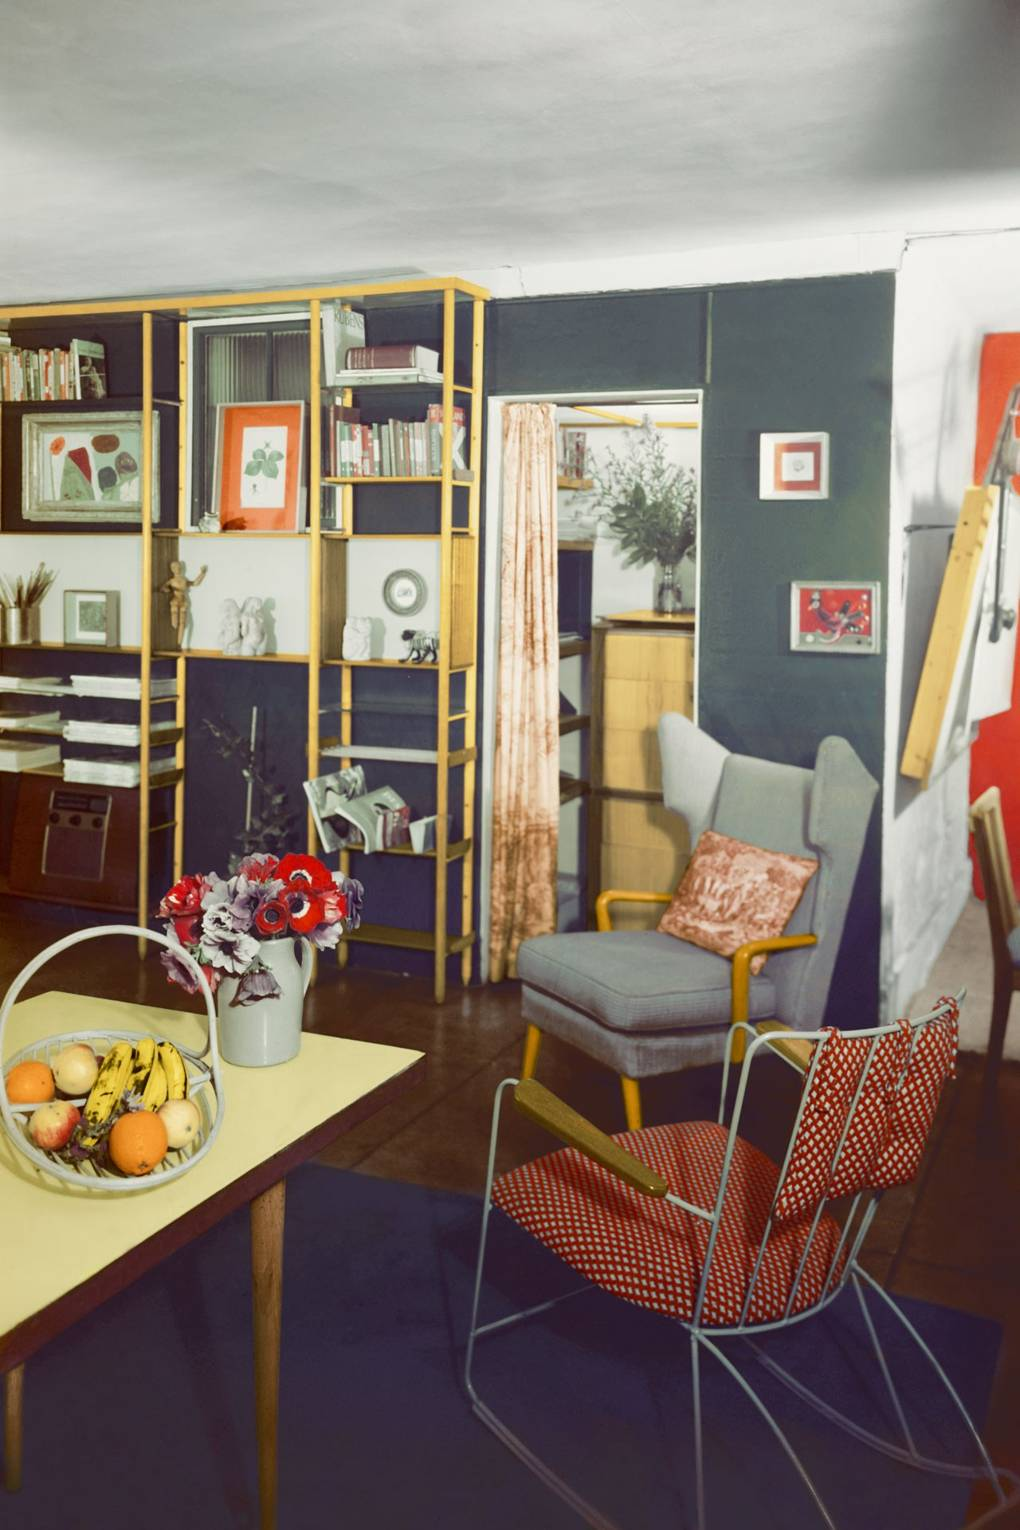 Bon 1950s Hipsters: Pictures Of Mid Century Style In Fifties House | House U0026  Garden